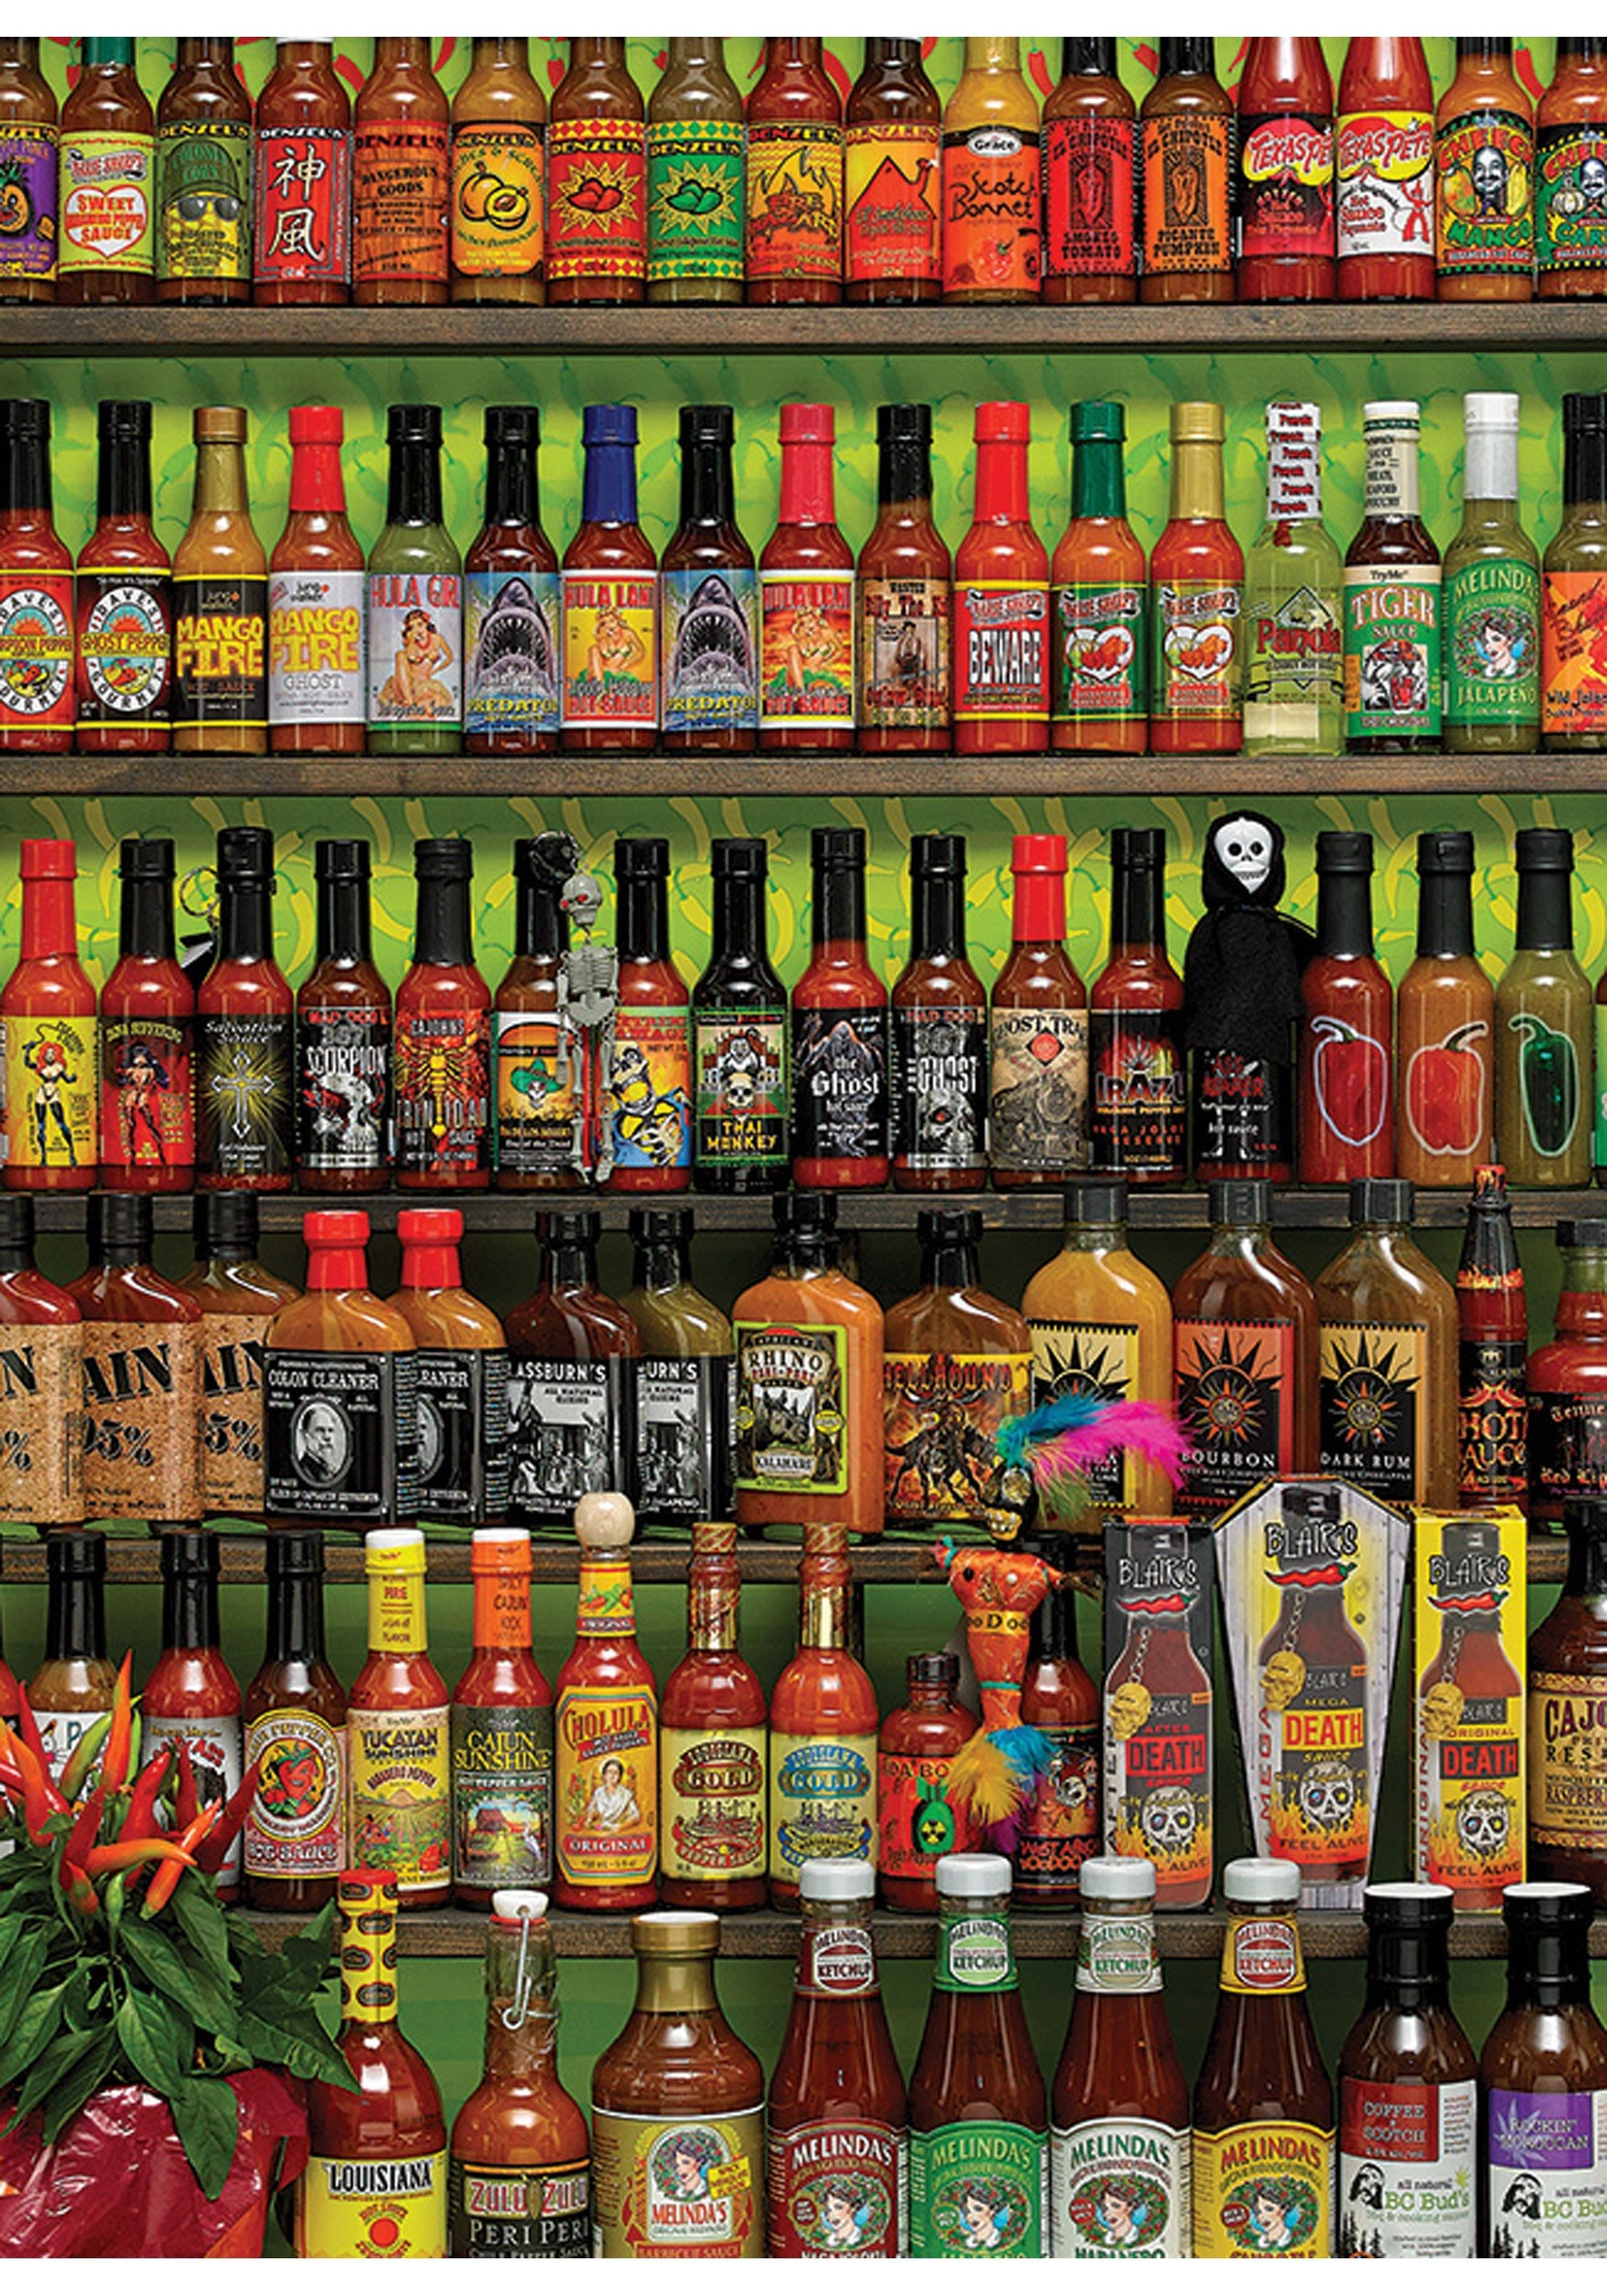 cobble hill puzzle  1000 Piece Hot Hot Sauce Cobble Hill Puzzle